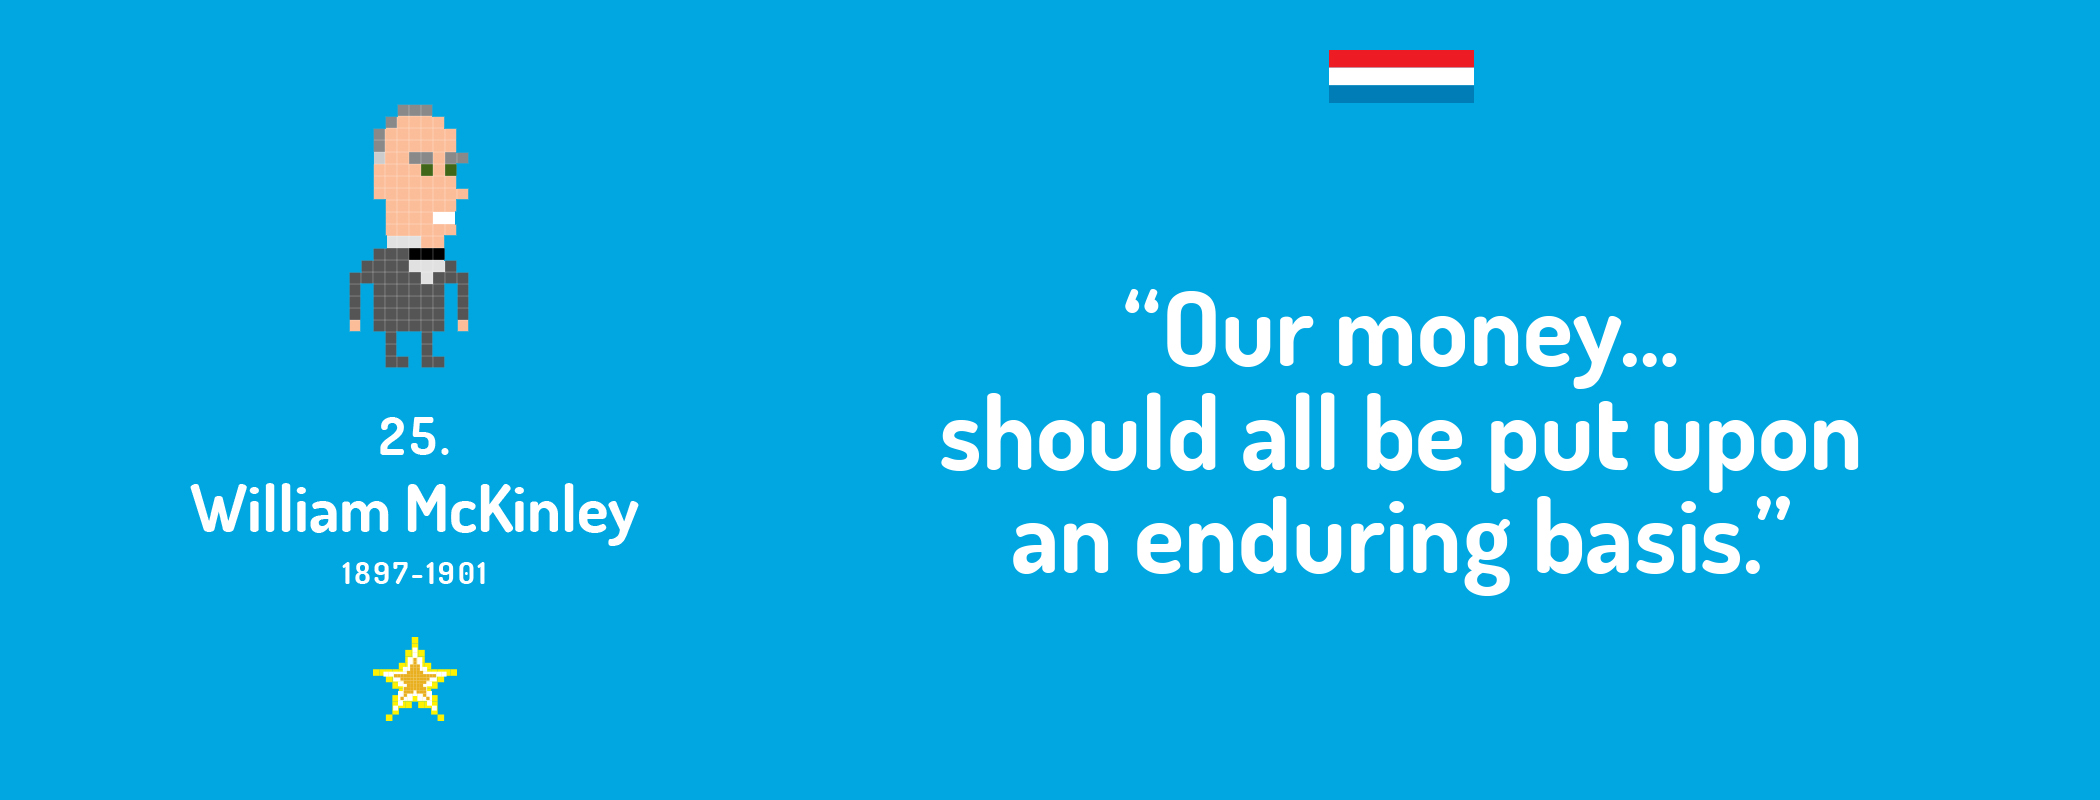 Our money…should all be put upon an enduring basis.